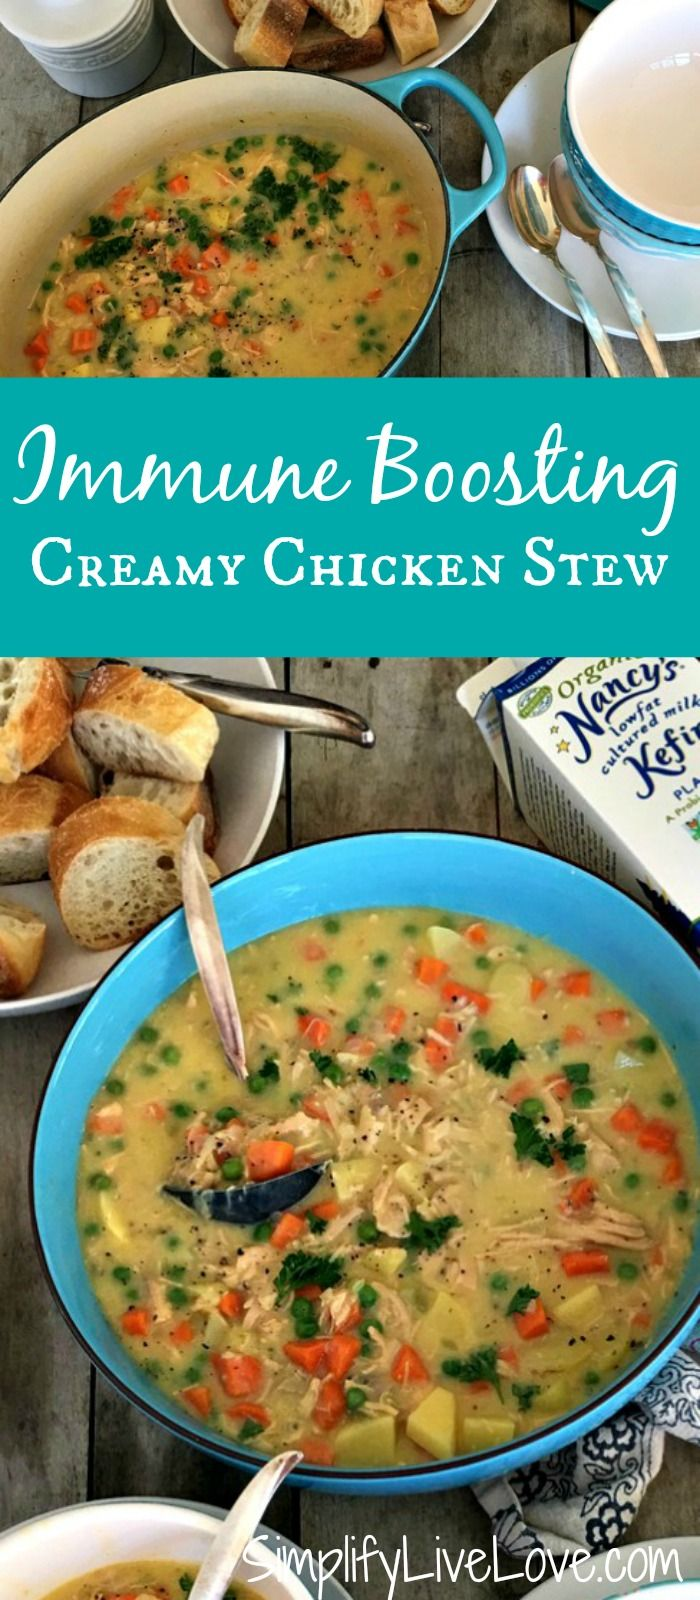 This creamy chicken stew is a family favorite recipe. Featuring ...